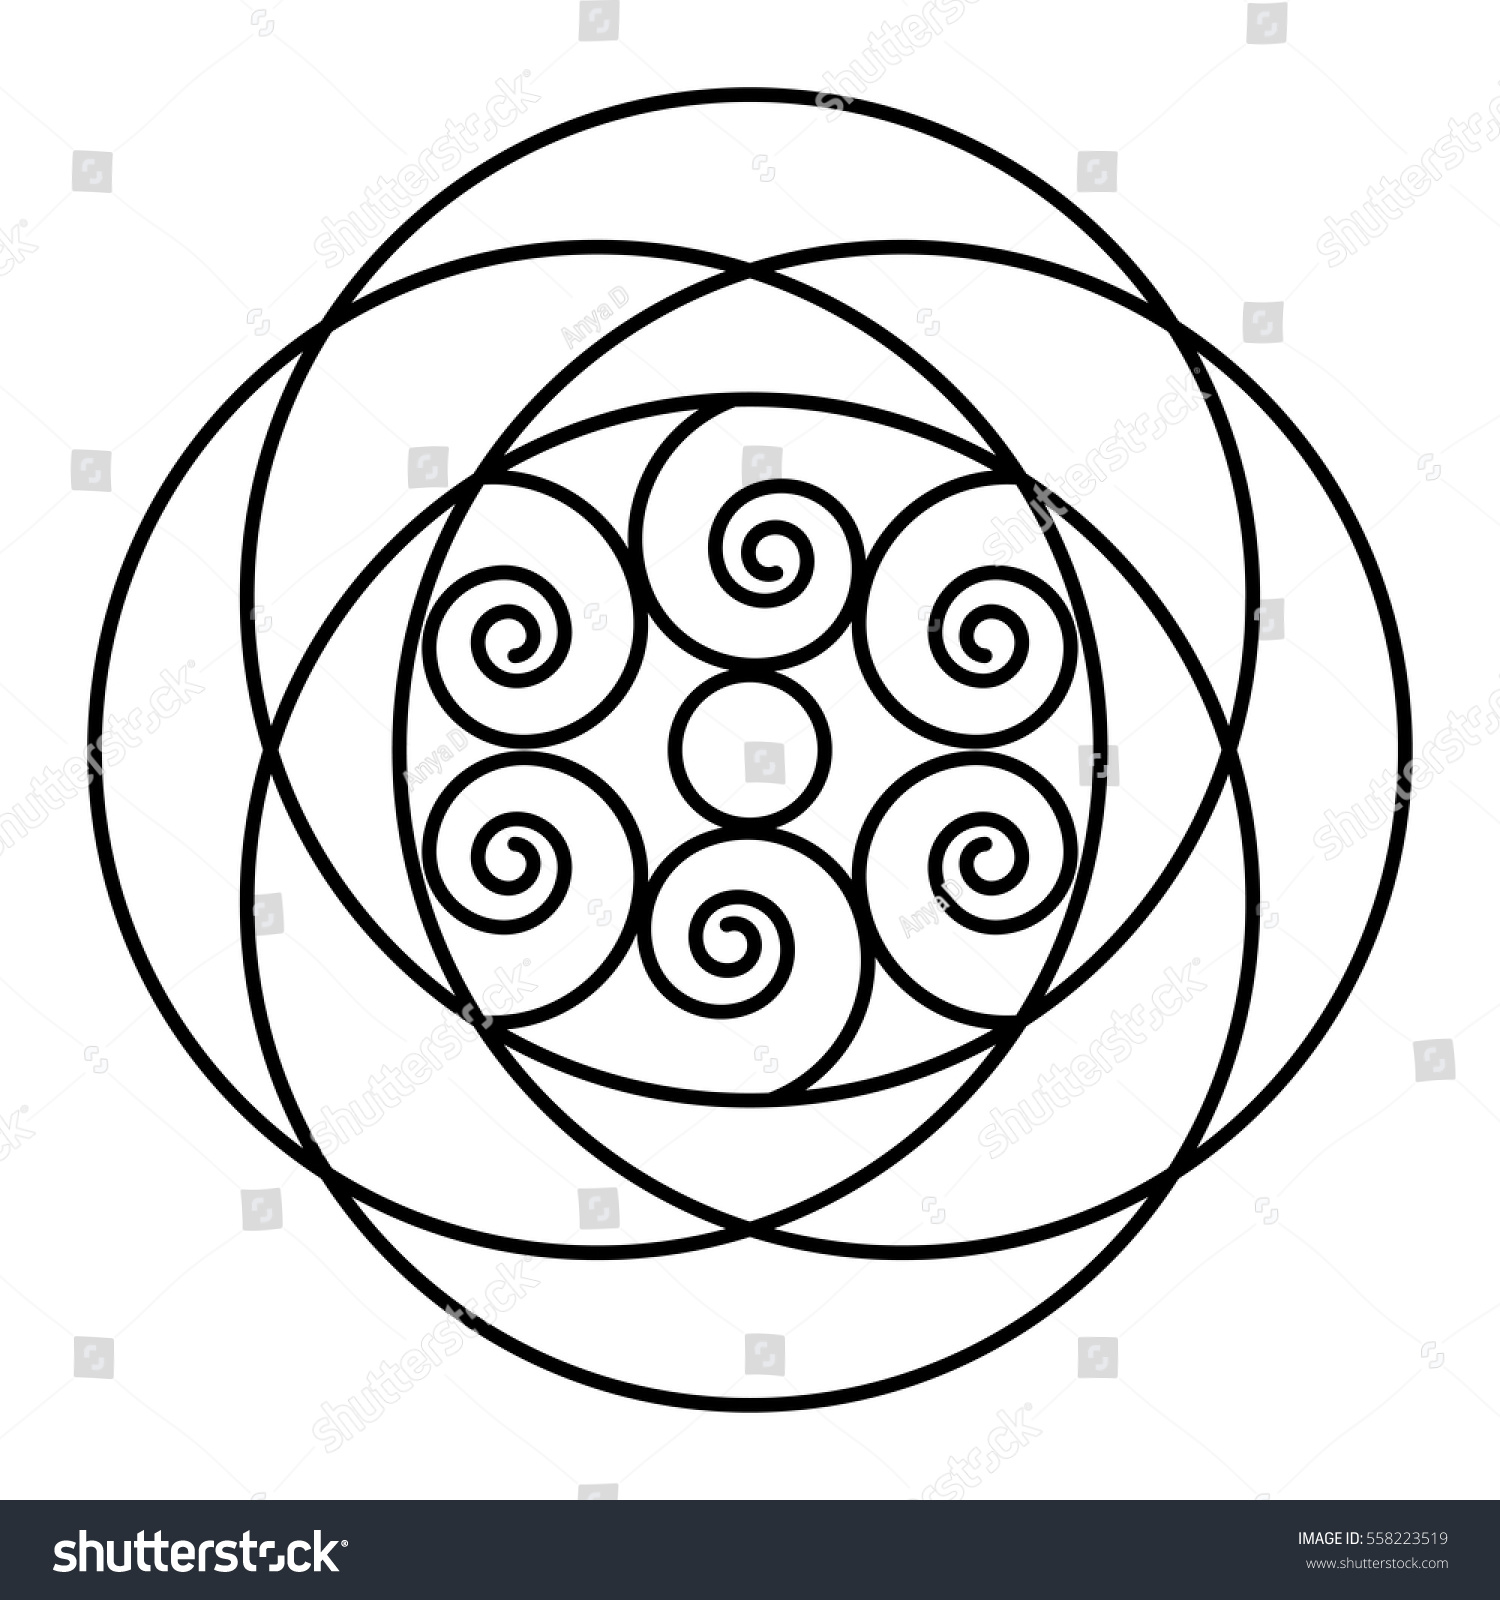 Easy Floral Black White Rose Mandala Stock Vector HD (Royalty Free ...